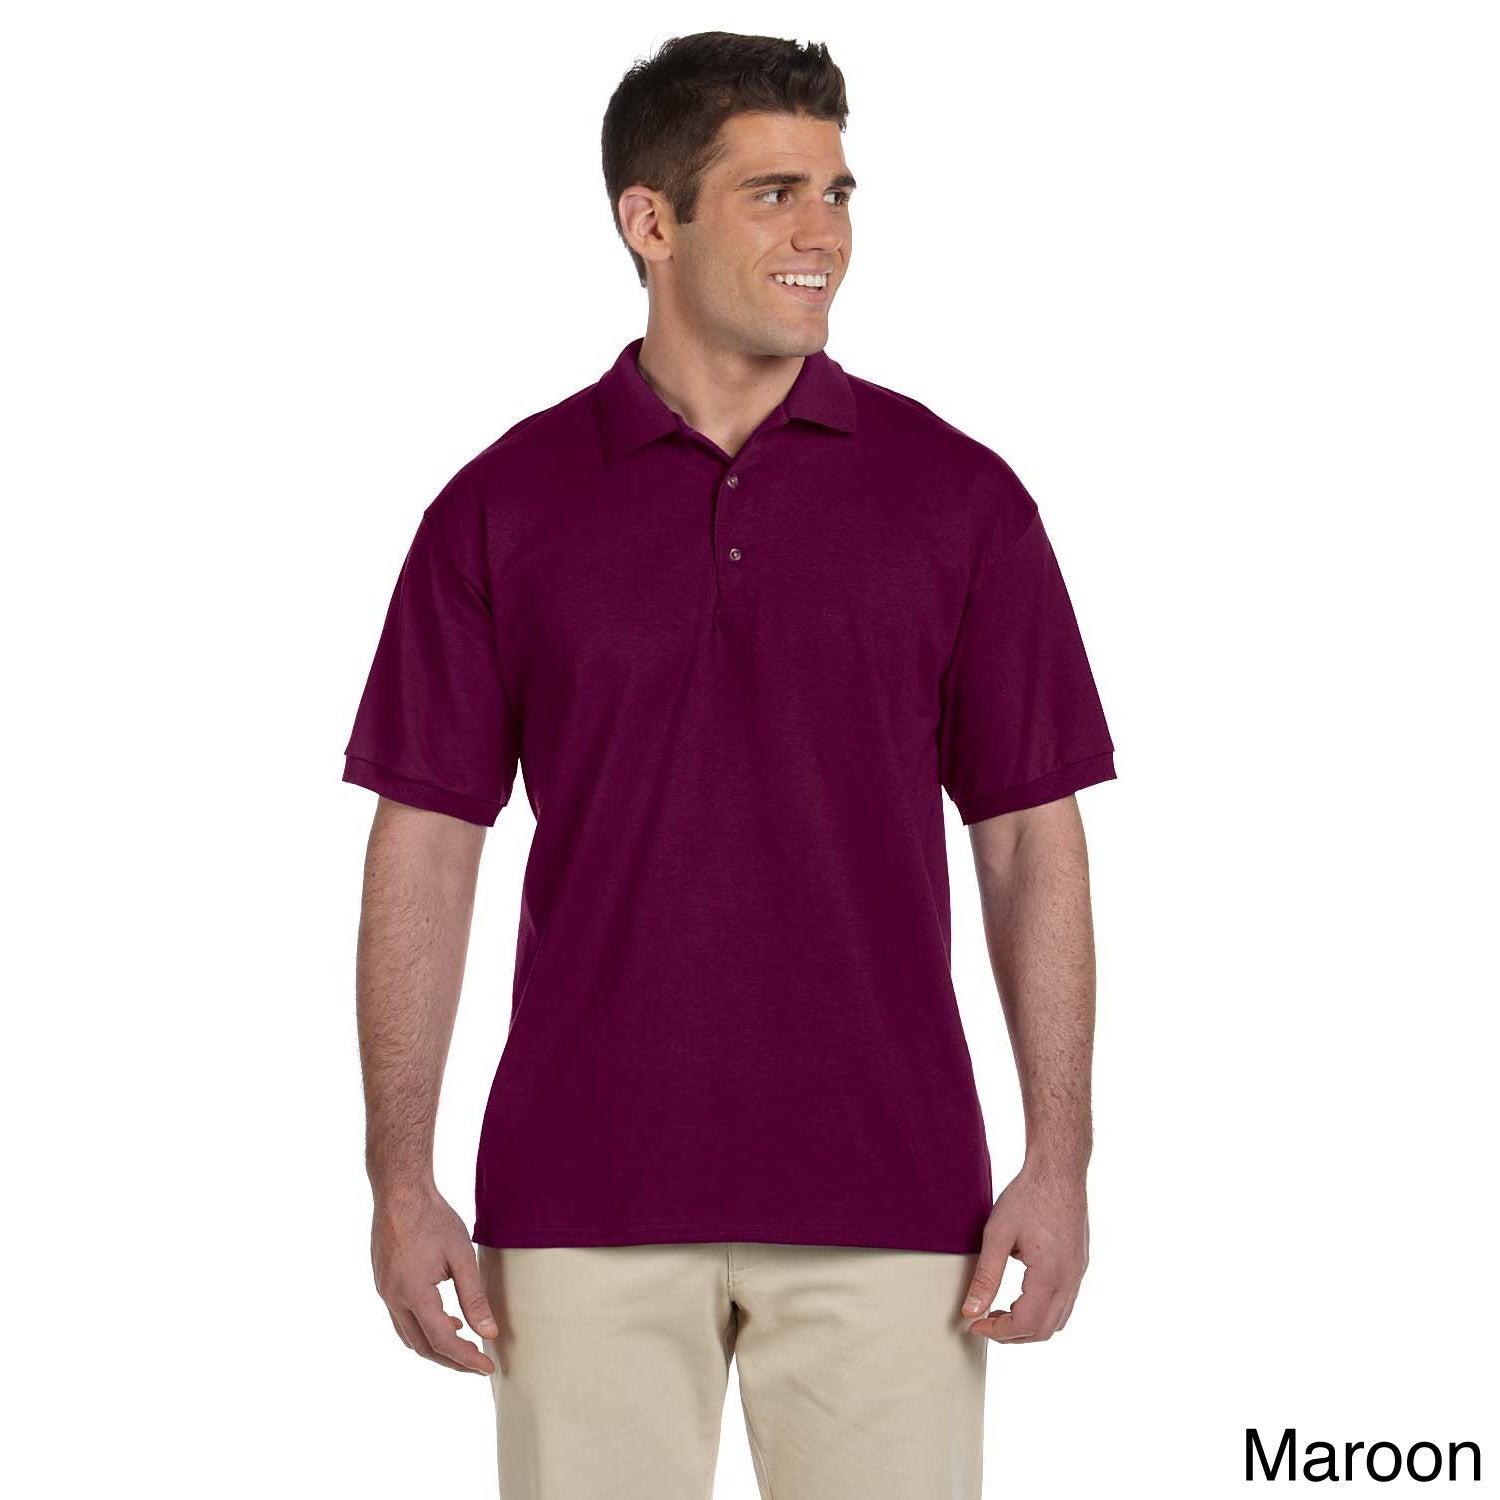 Gildan Gildan Mens Ultra Cotton Jersey Polo Shirt Brown Size L